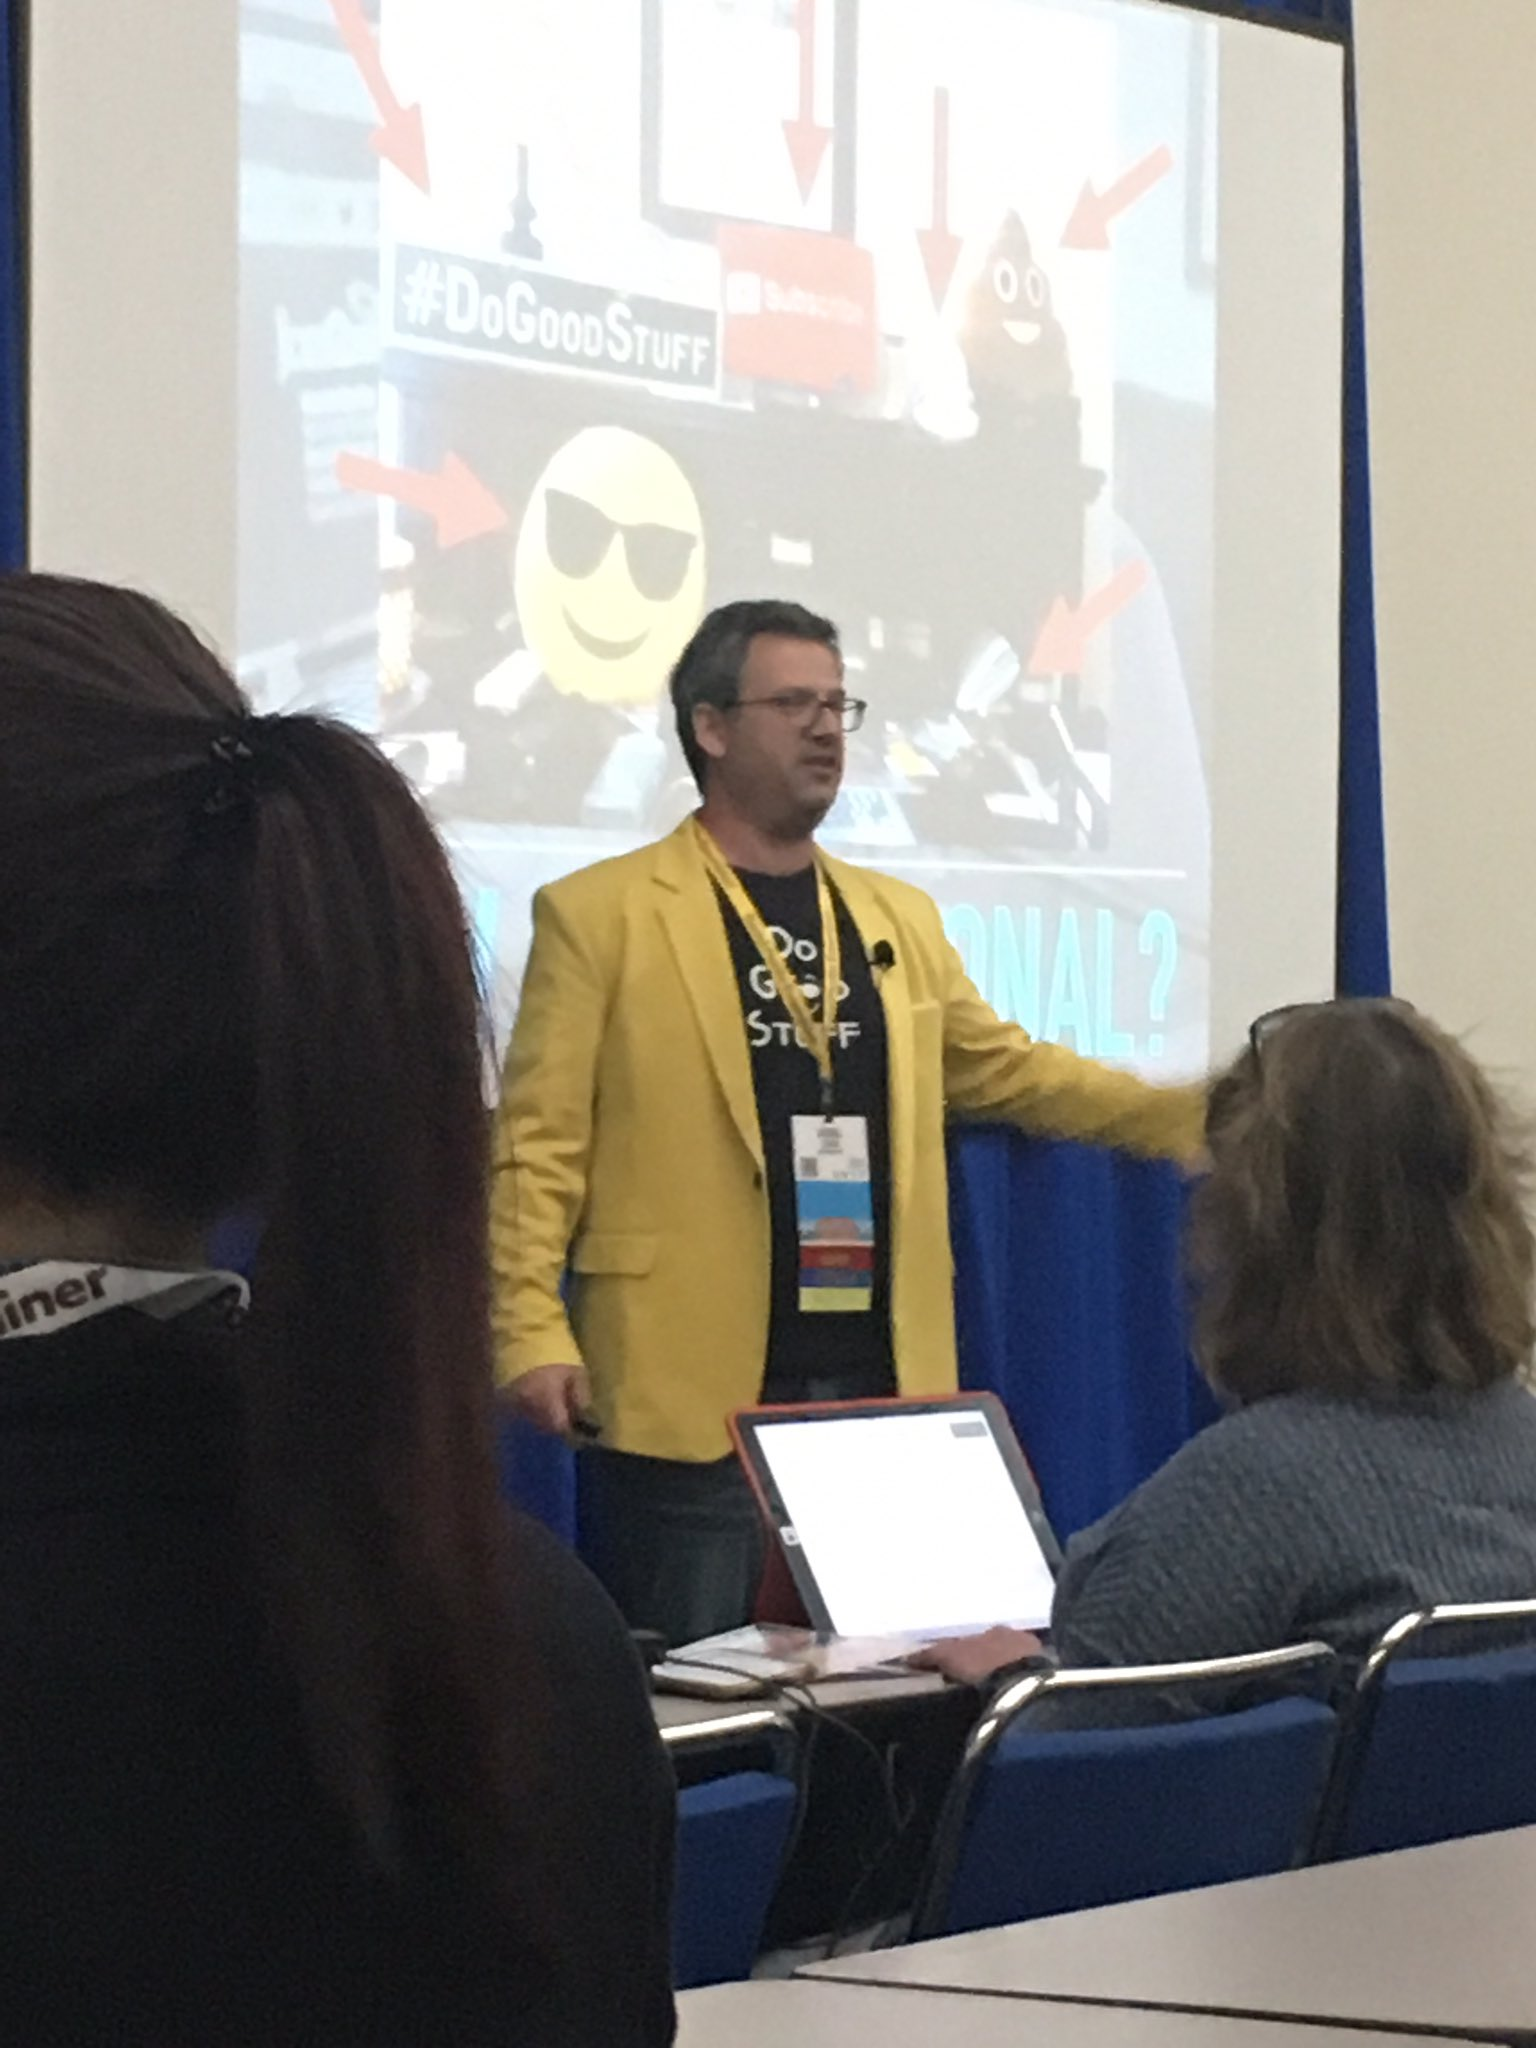 Picking up great tips from @joelcomm for my Facebook tv show #SMMW17 https://t.co/IQfJ2EKEMv